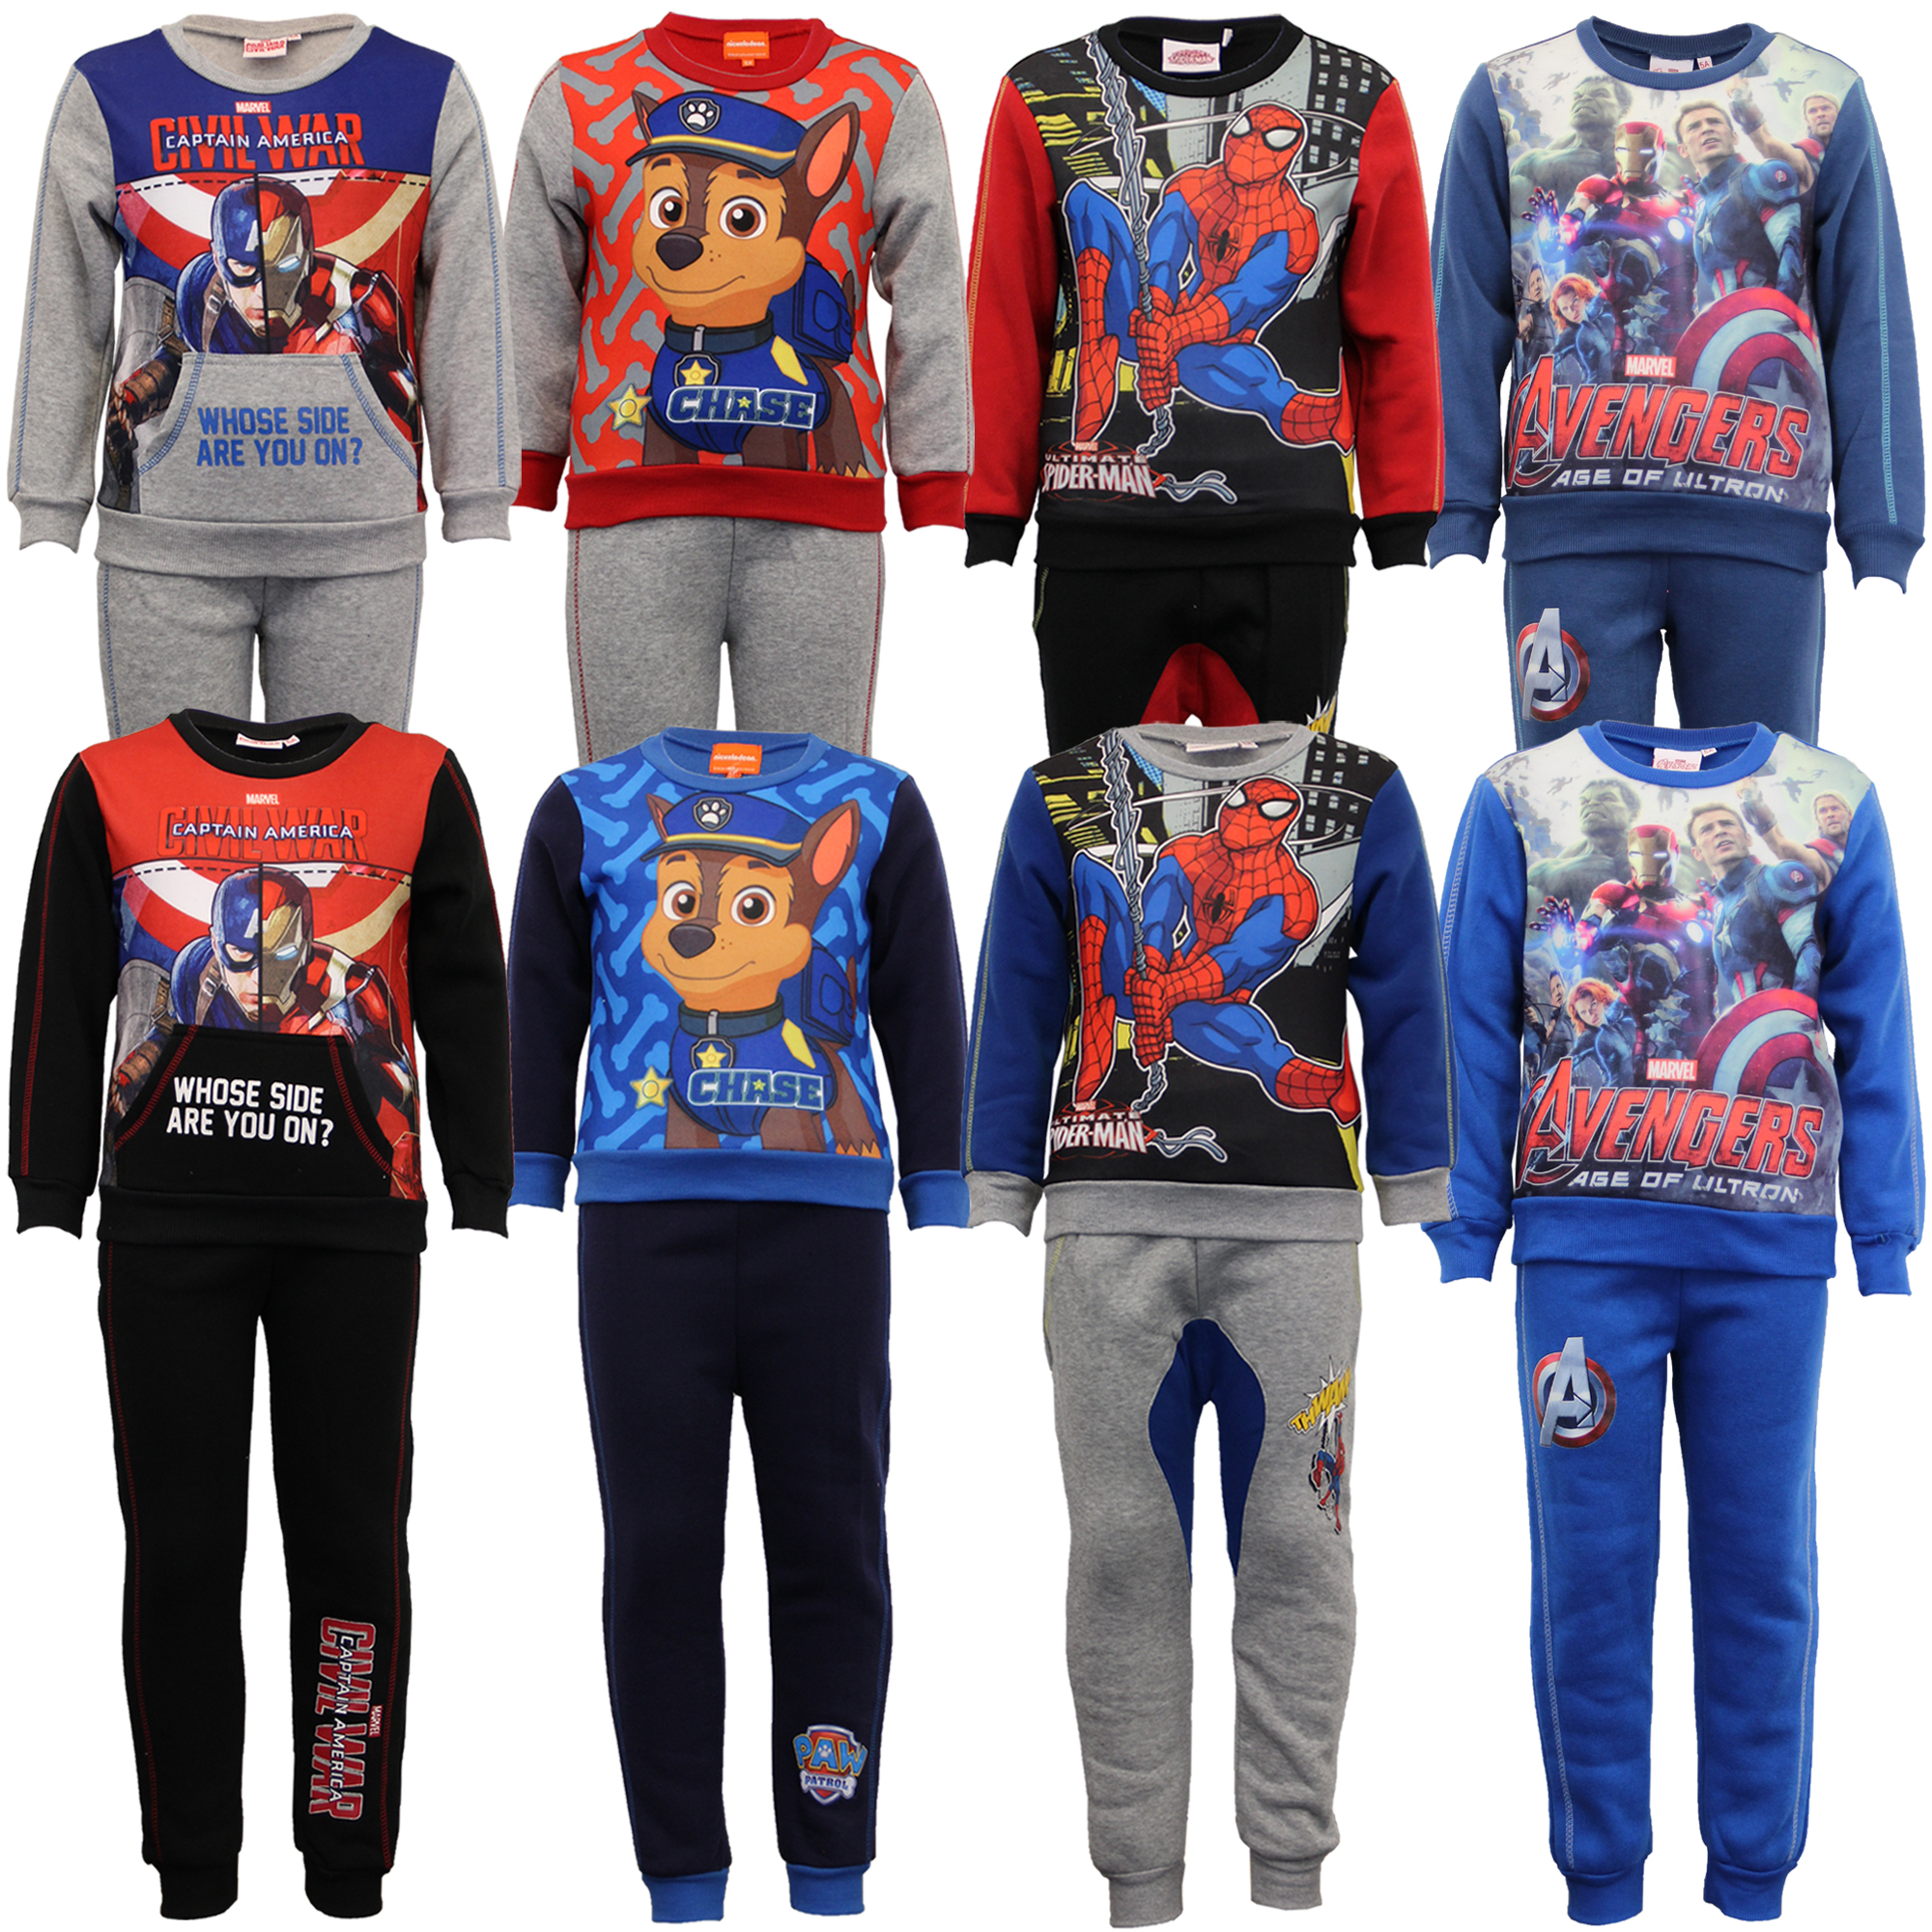 Marvel Official Spiderman Character Lightweight Fleece Joggers Trousers Sweatpants for Boys 2-8 Years